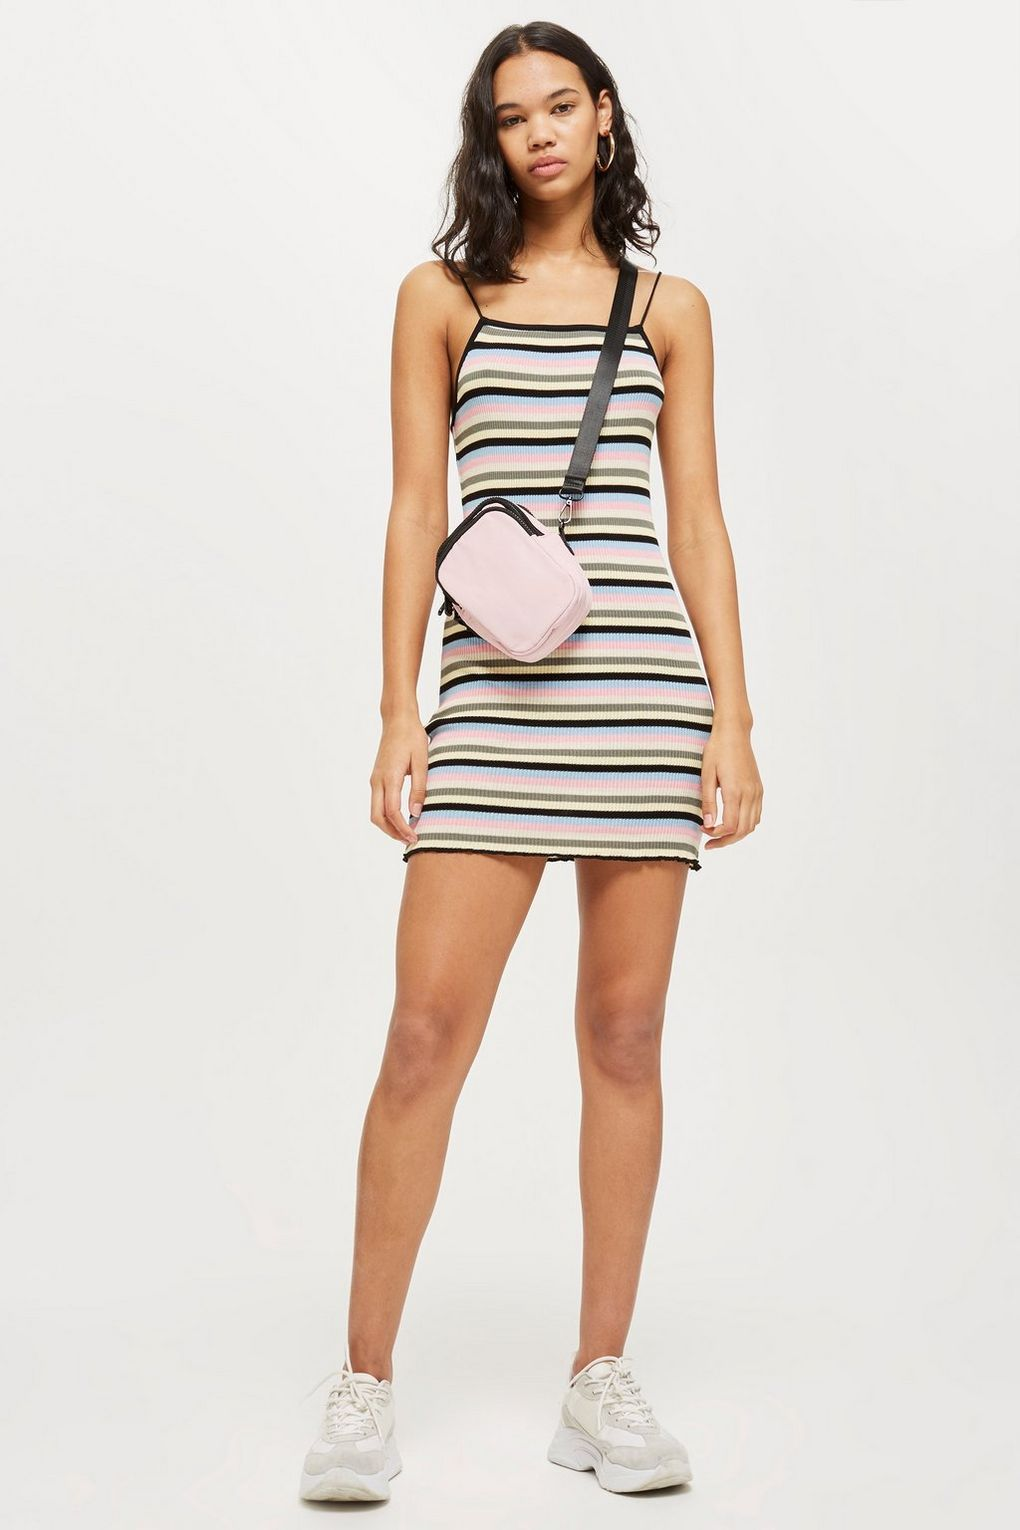 Candy Stripe Bodycon Dress Dresses Clothing Topshop Usa Bodycon Dress Casual Striped Bodycon Dress Clothes [ 1530 x 1020 Pixel ]